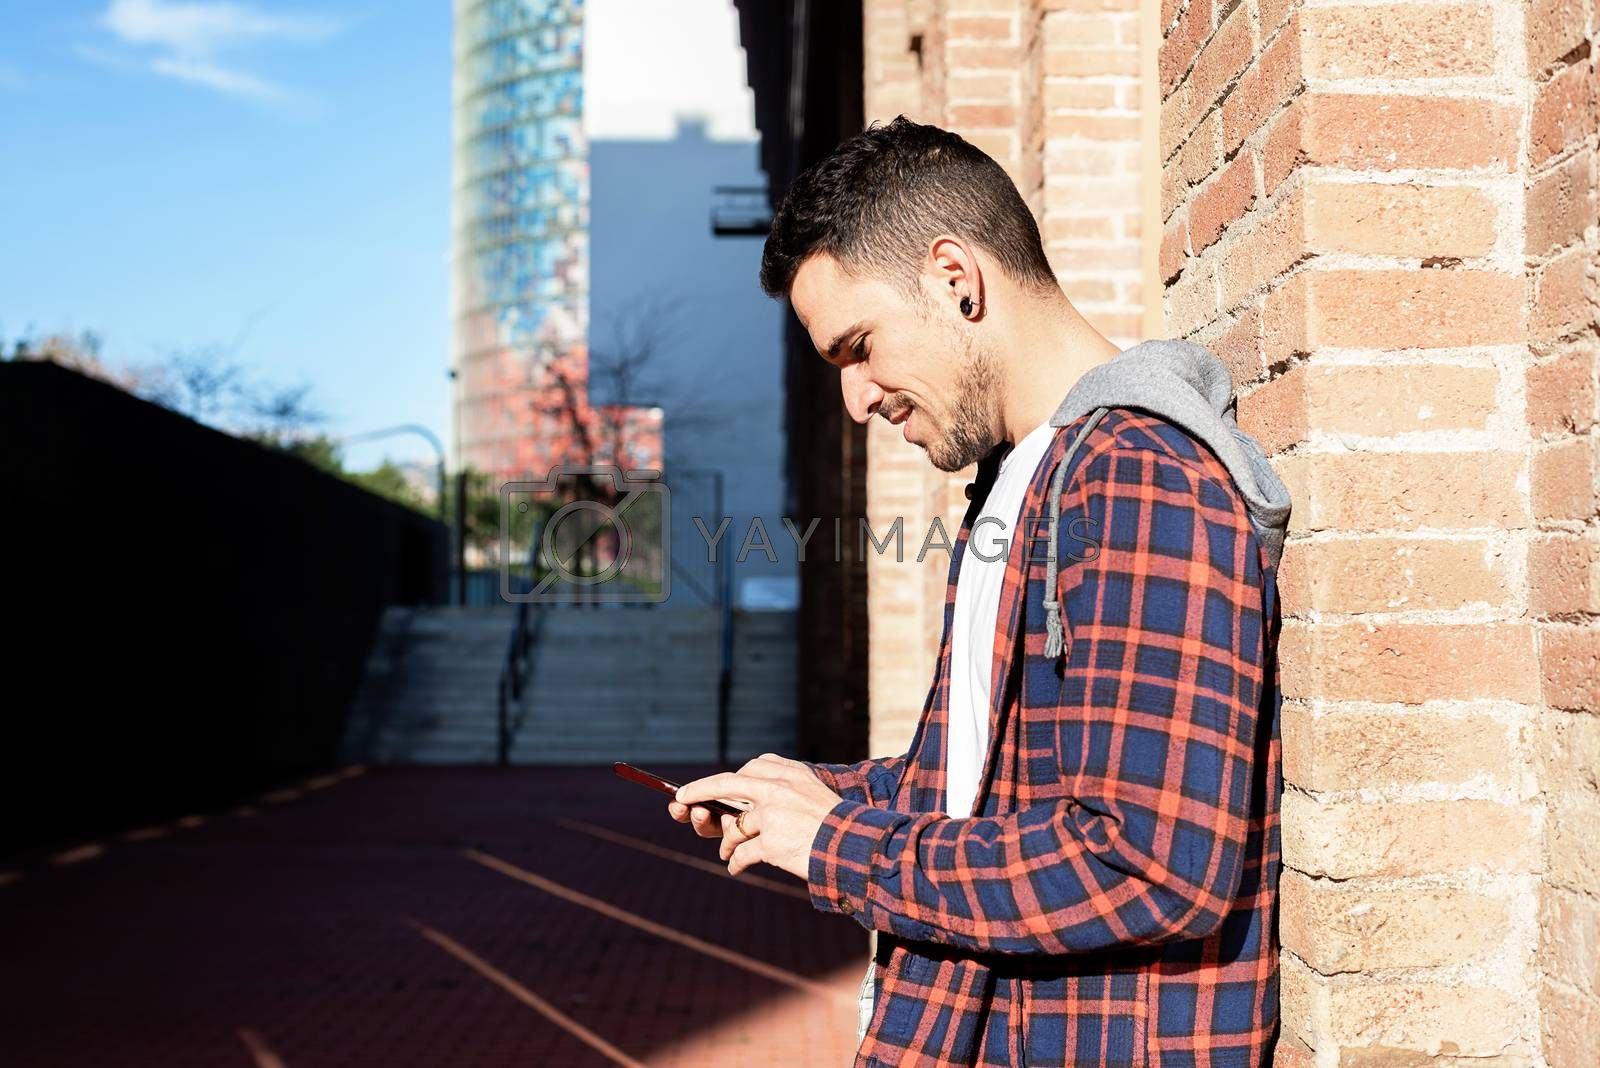 Young bearded man leaning on a bricked wall while using a smartphone